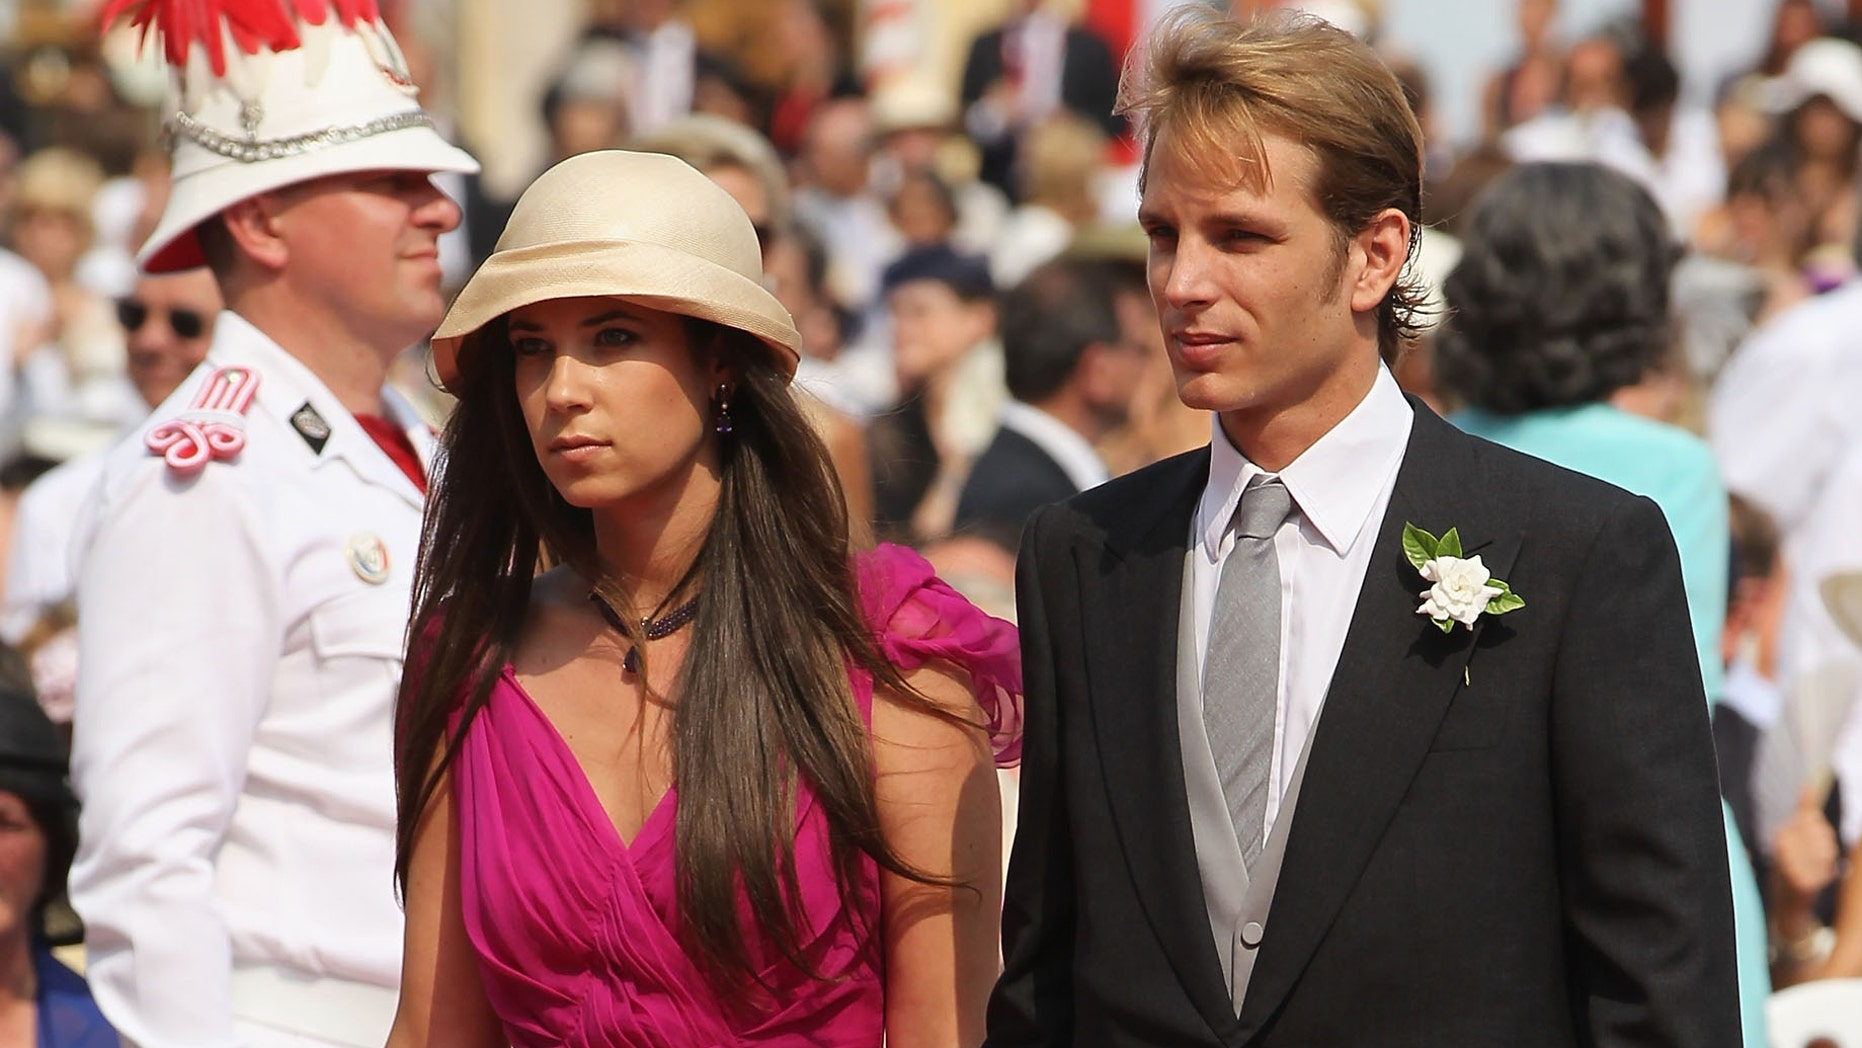 Tatiana Santo Domingo and Andrea Casiraghi attending the Royal Wedding of Prince Albert II of Monaco to Princess Charlene of Monaco.